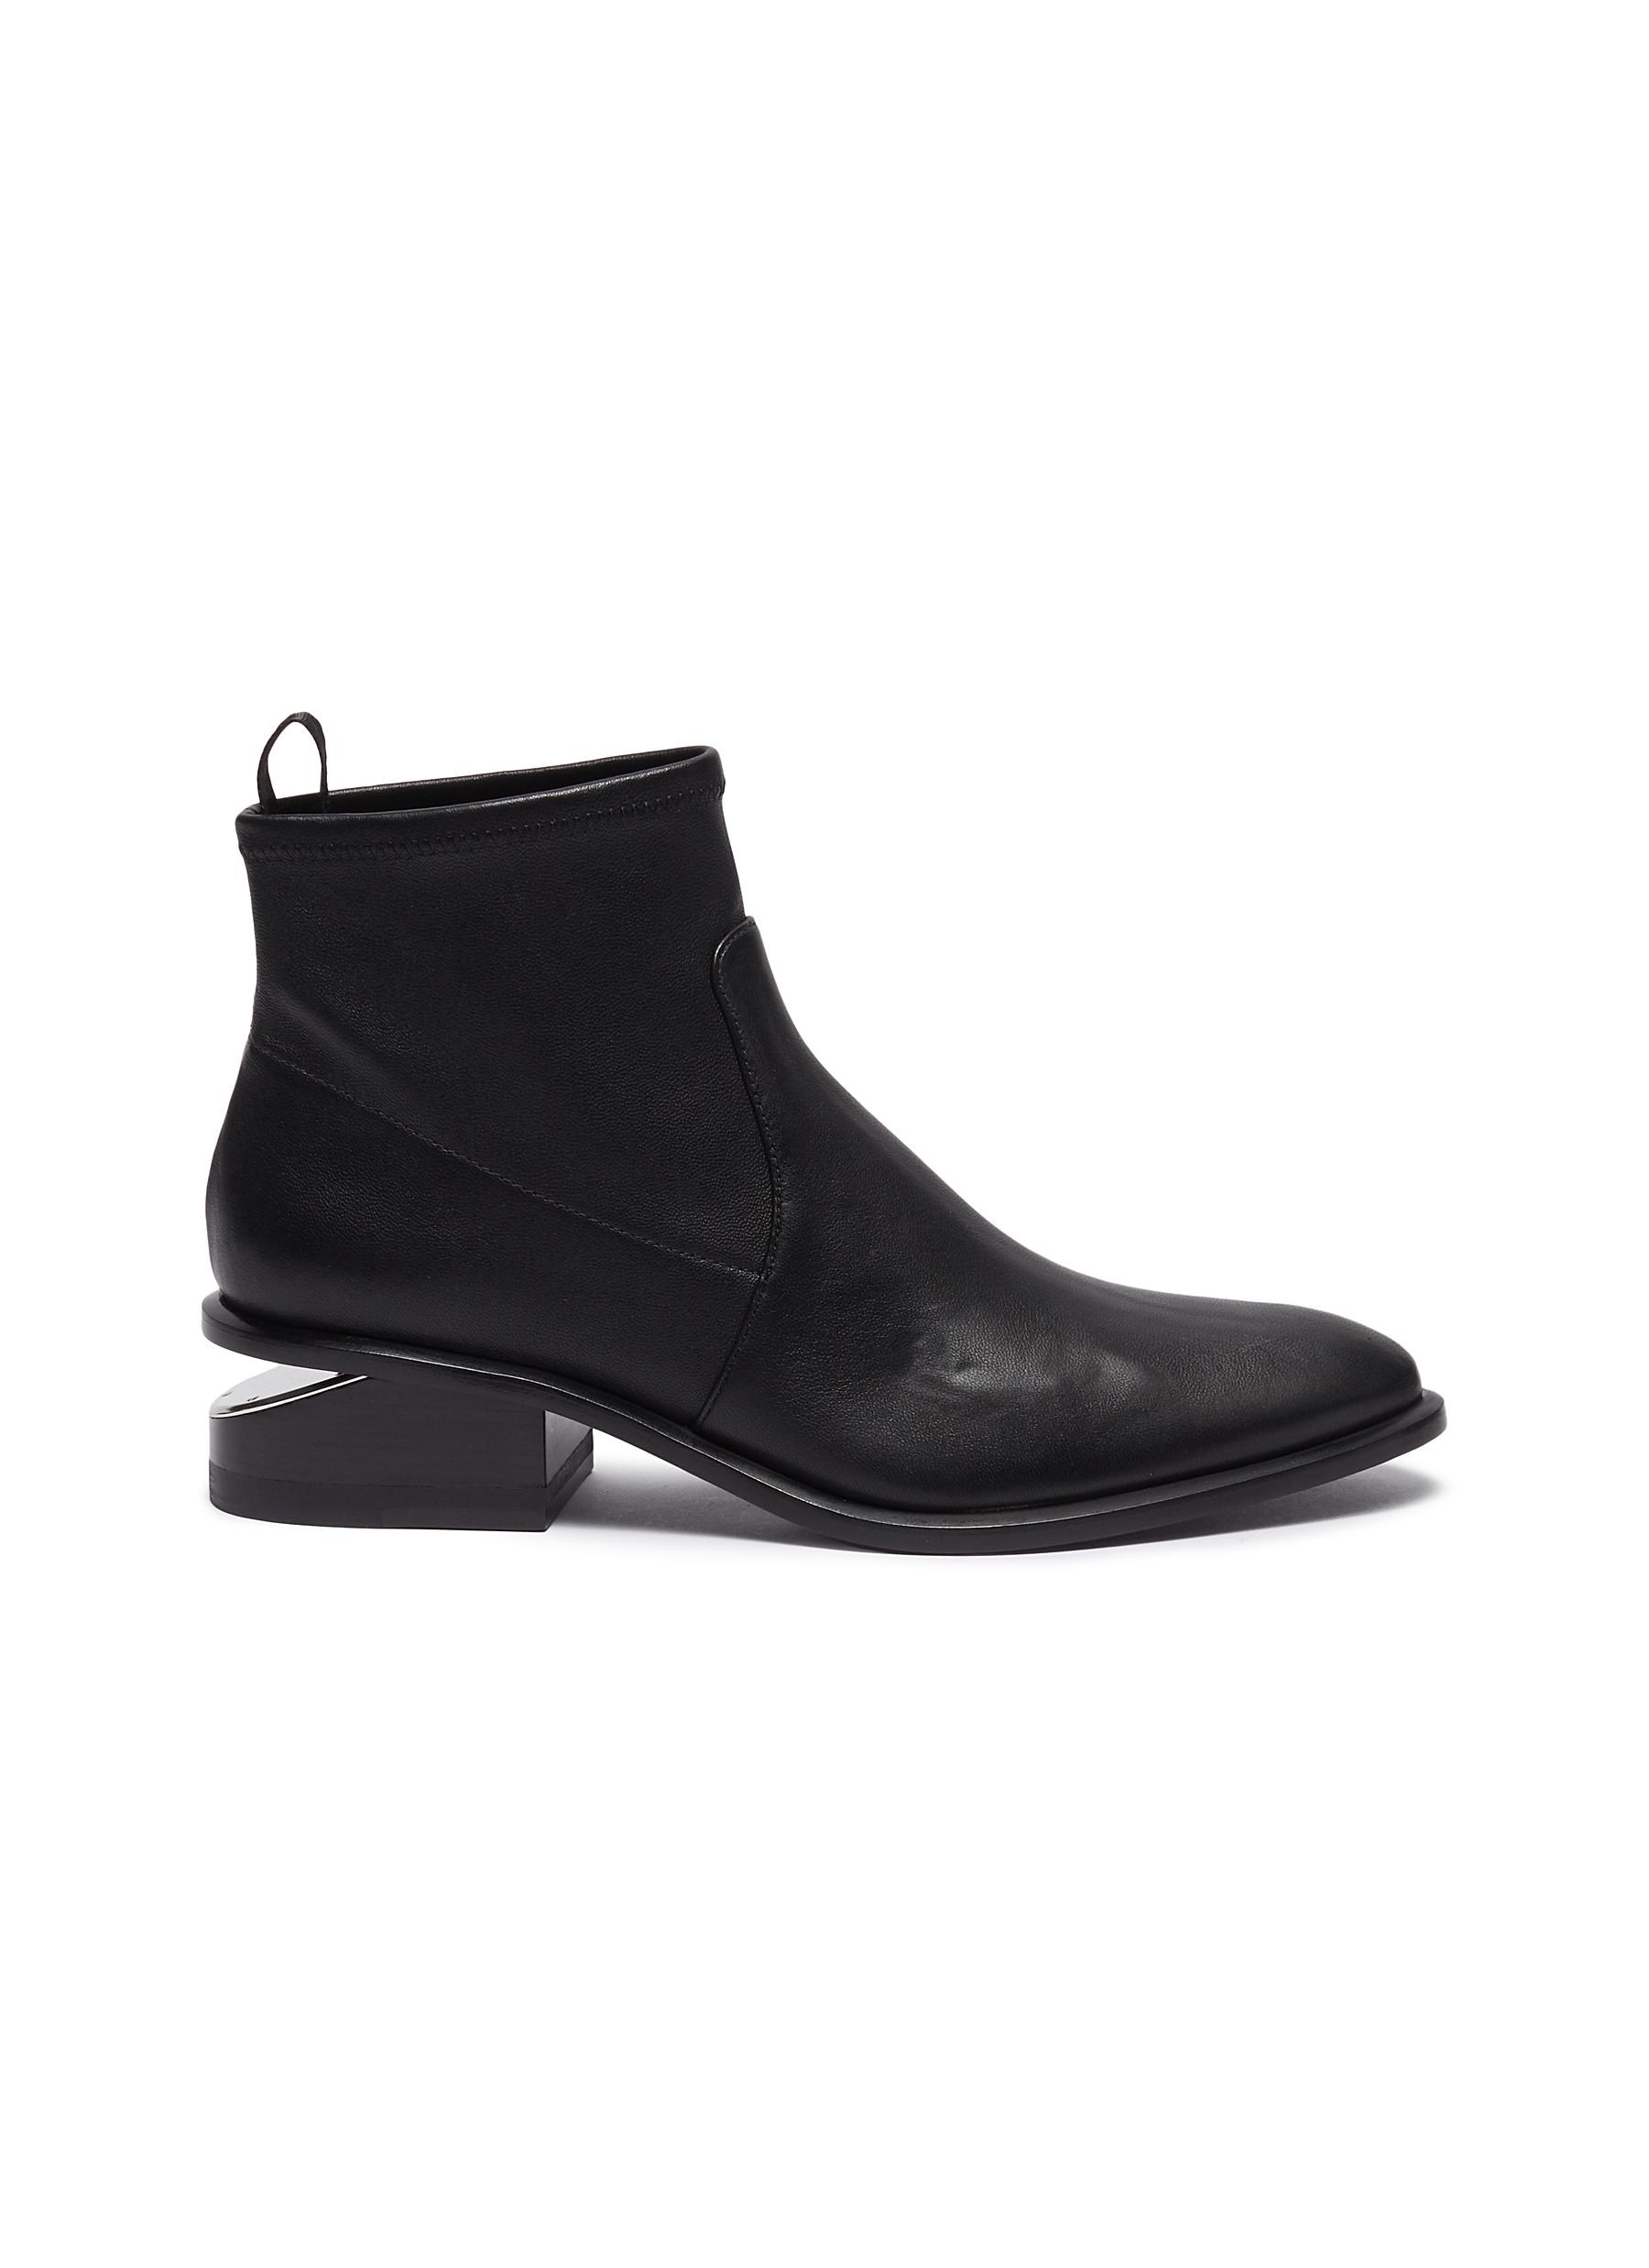 Kori cutout heel leather boots by Alexanderwang